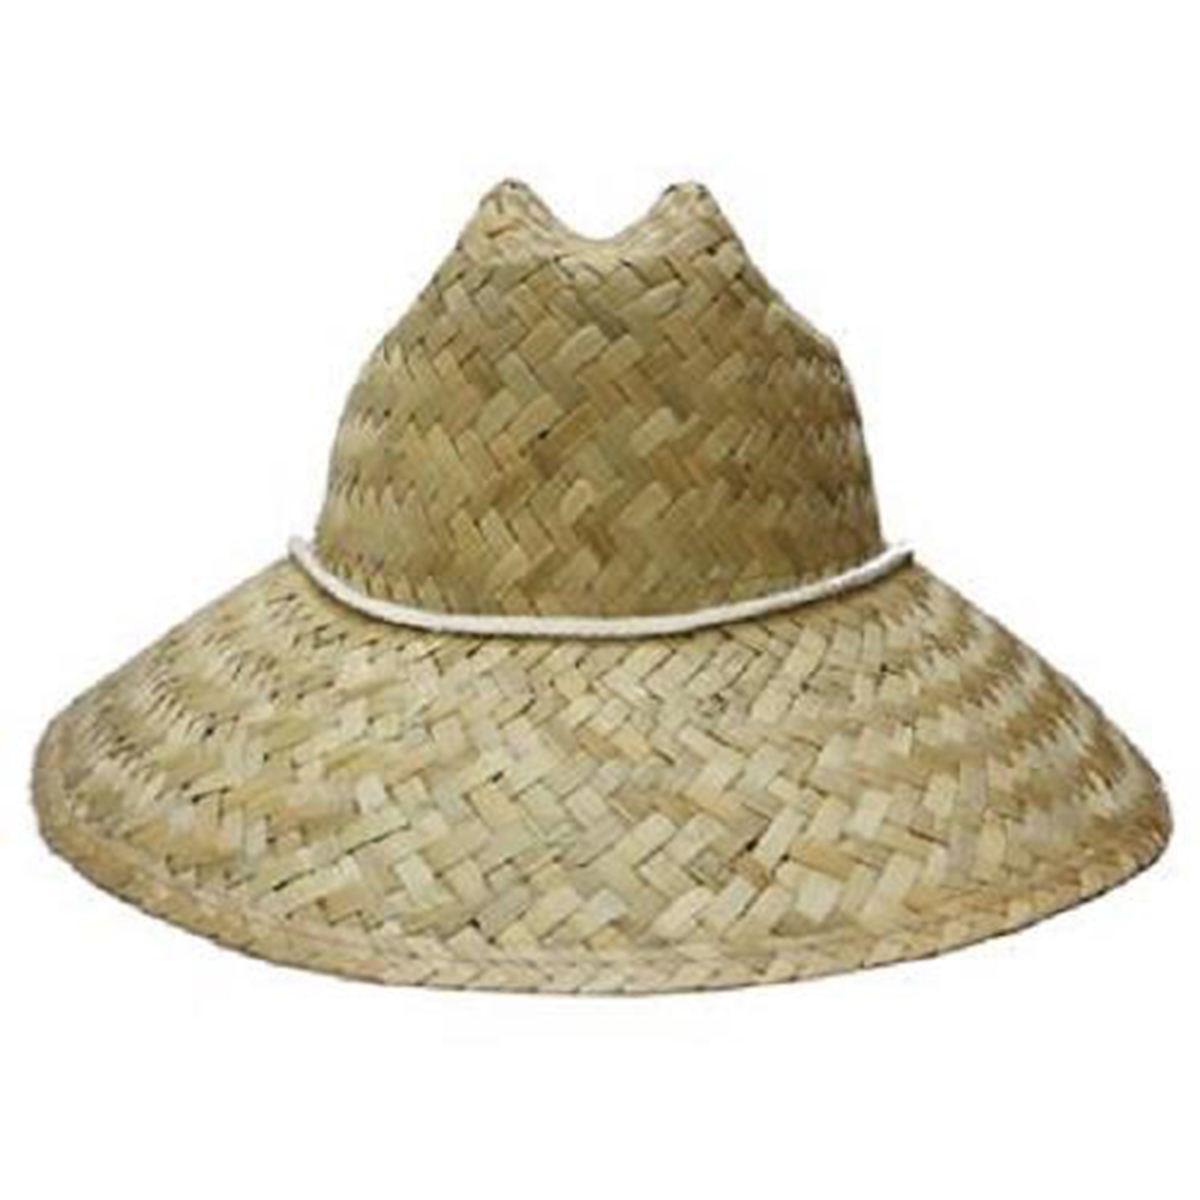 Hat - Assorted Each - 1 count only